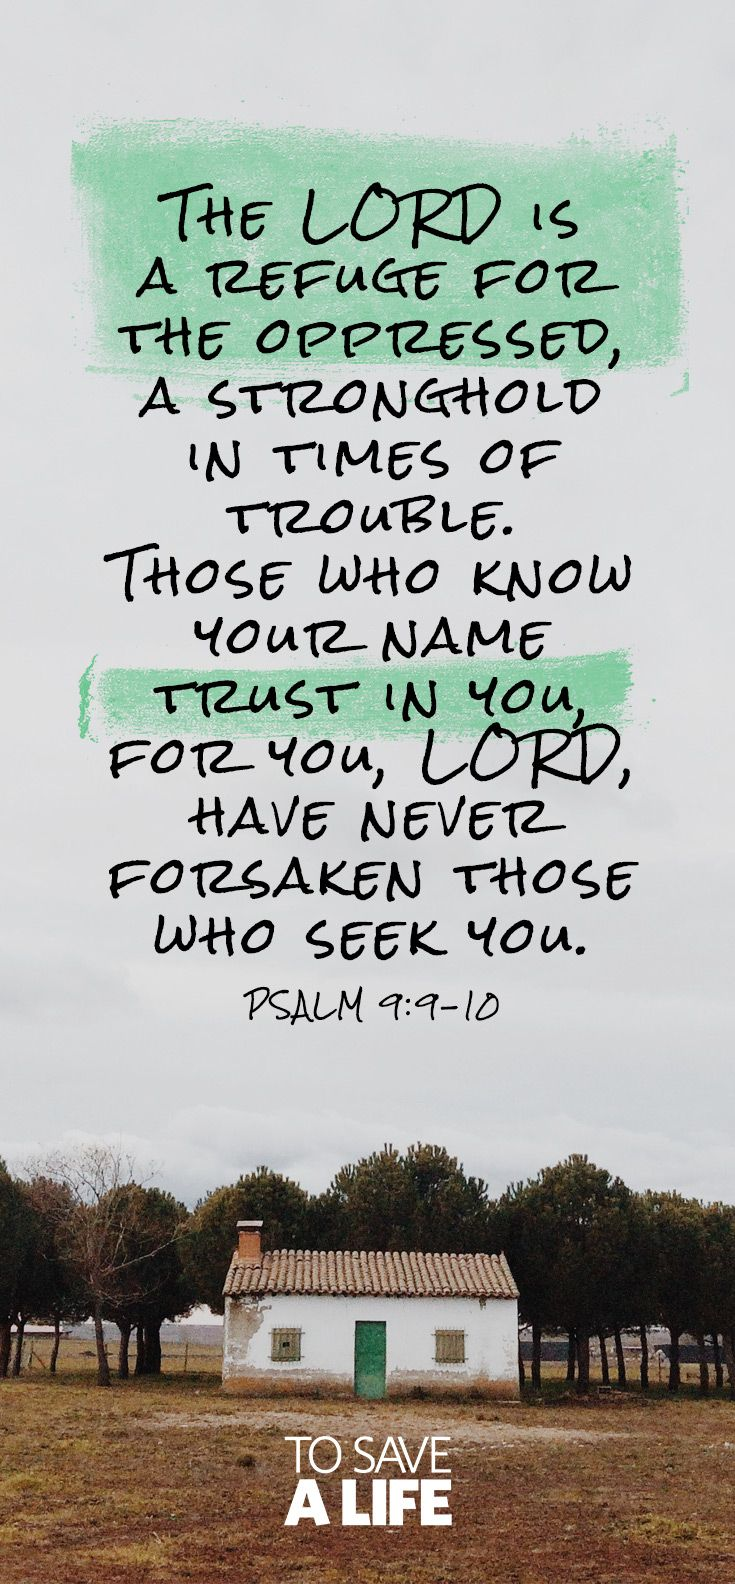 Pin by Marie-Anne Webster on About God | Bible quotes, Bible